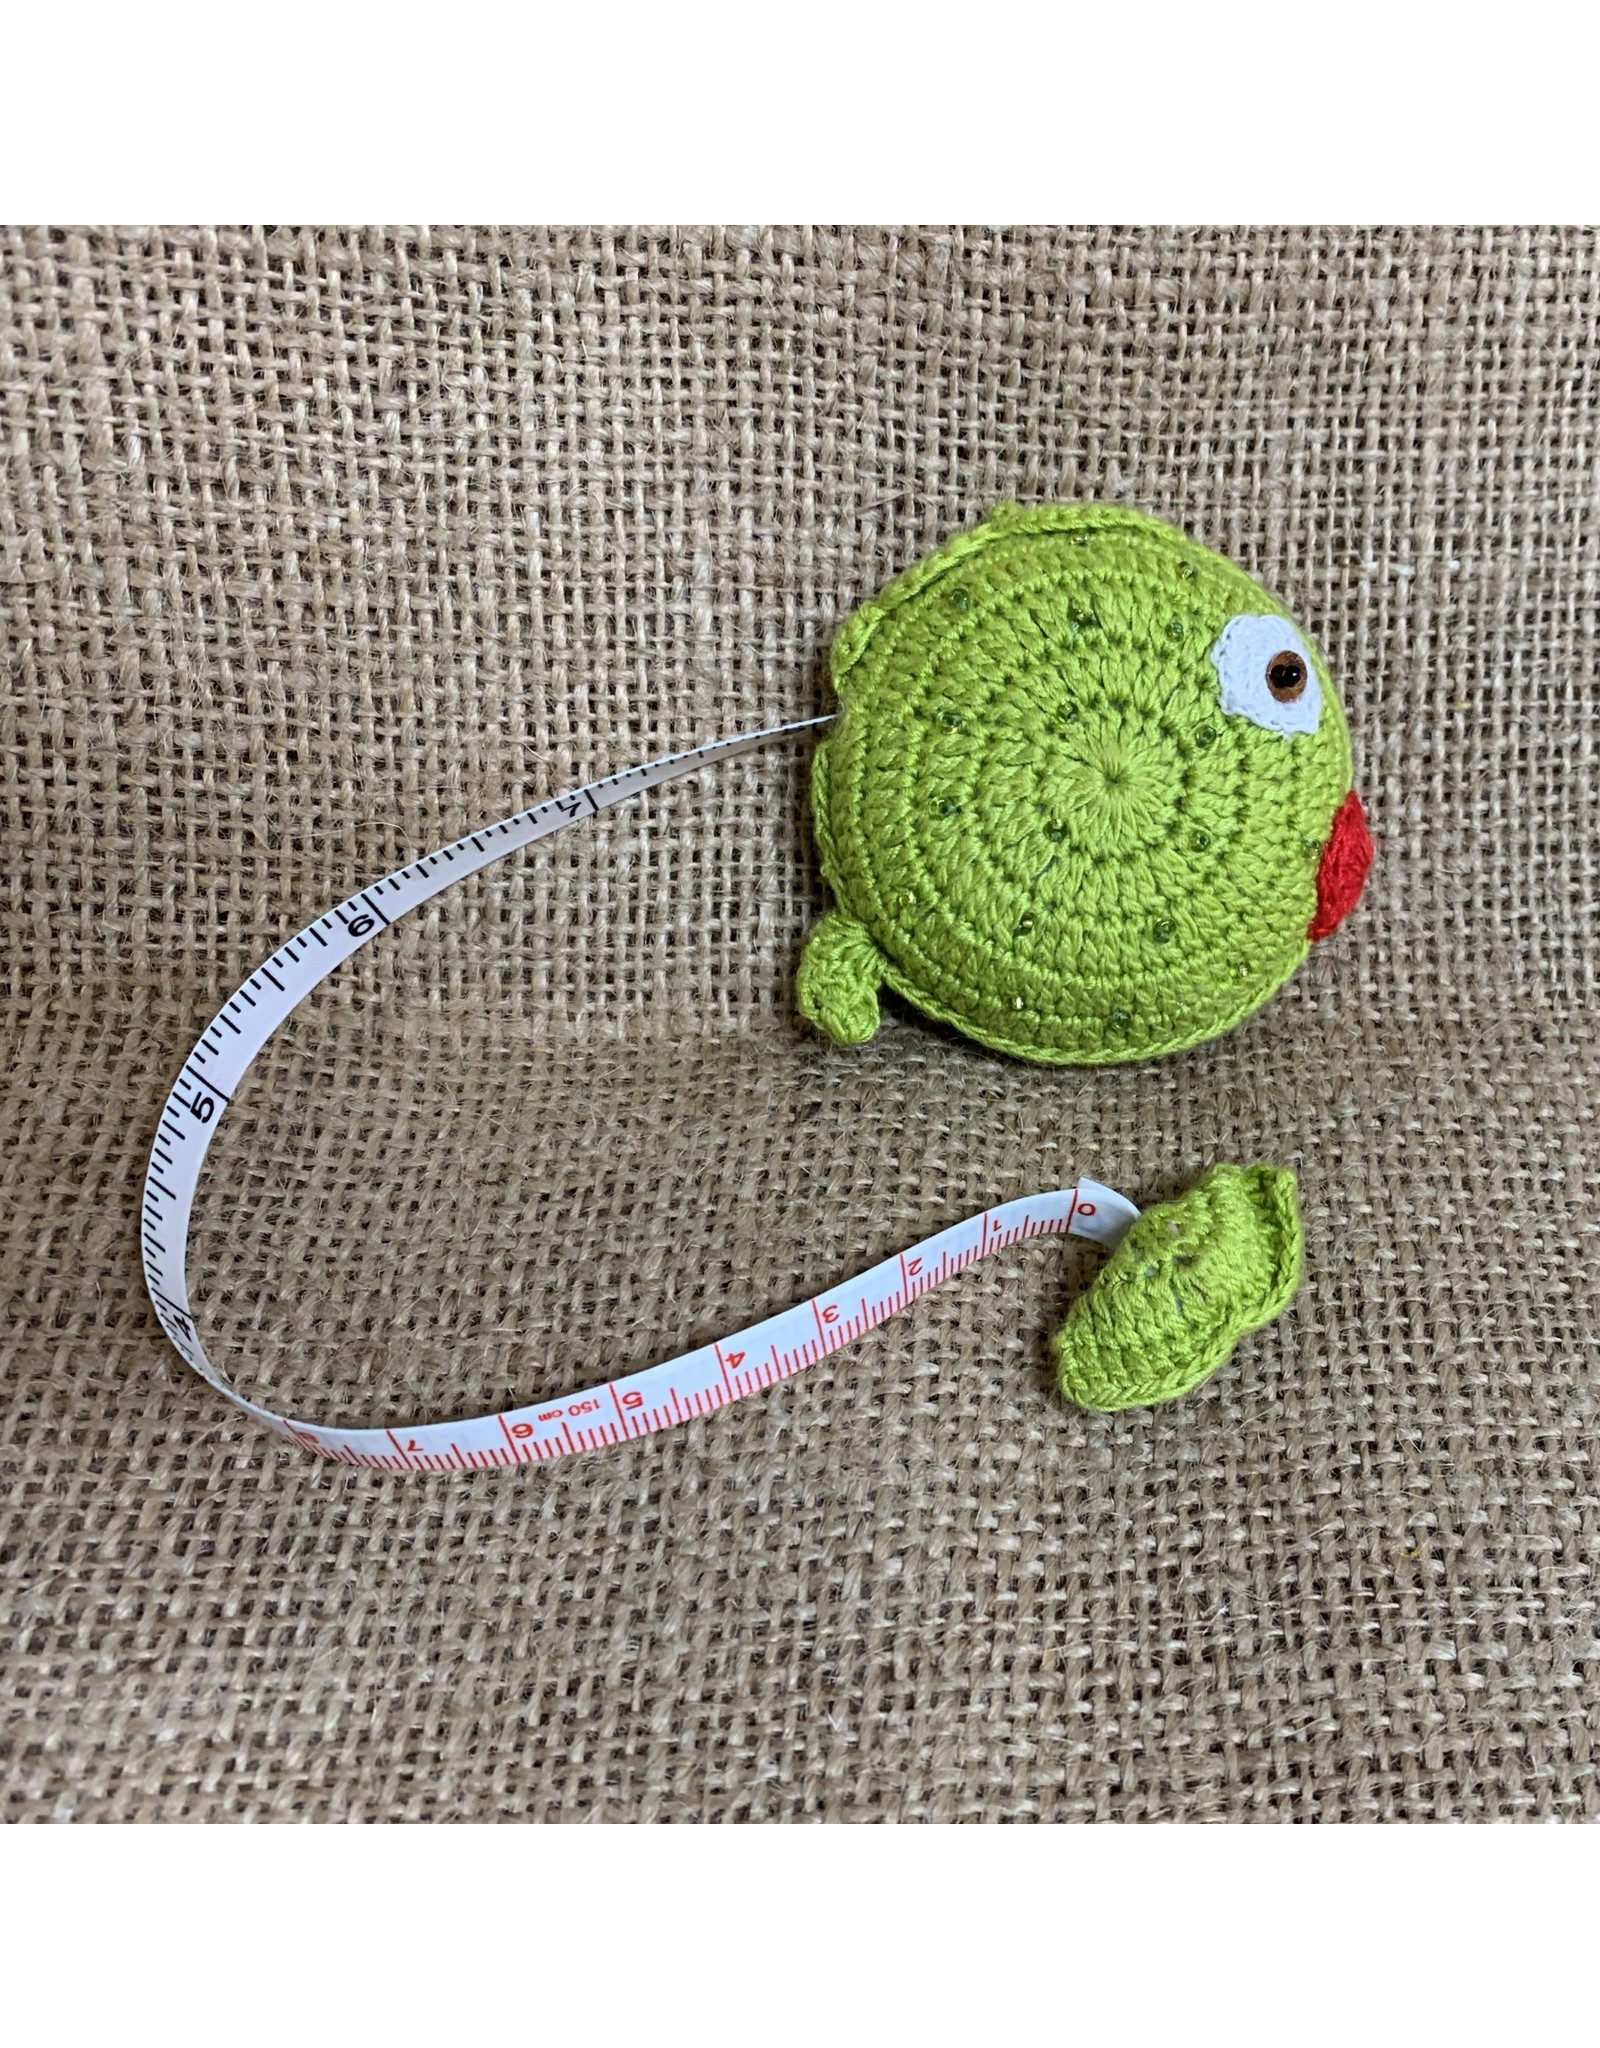 Ten Thousand Villages Fish Measuring Tape